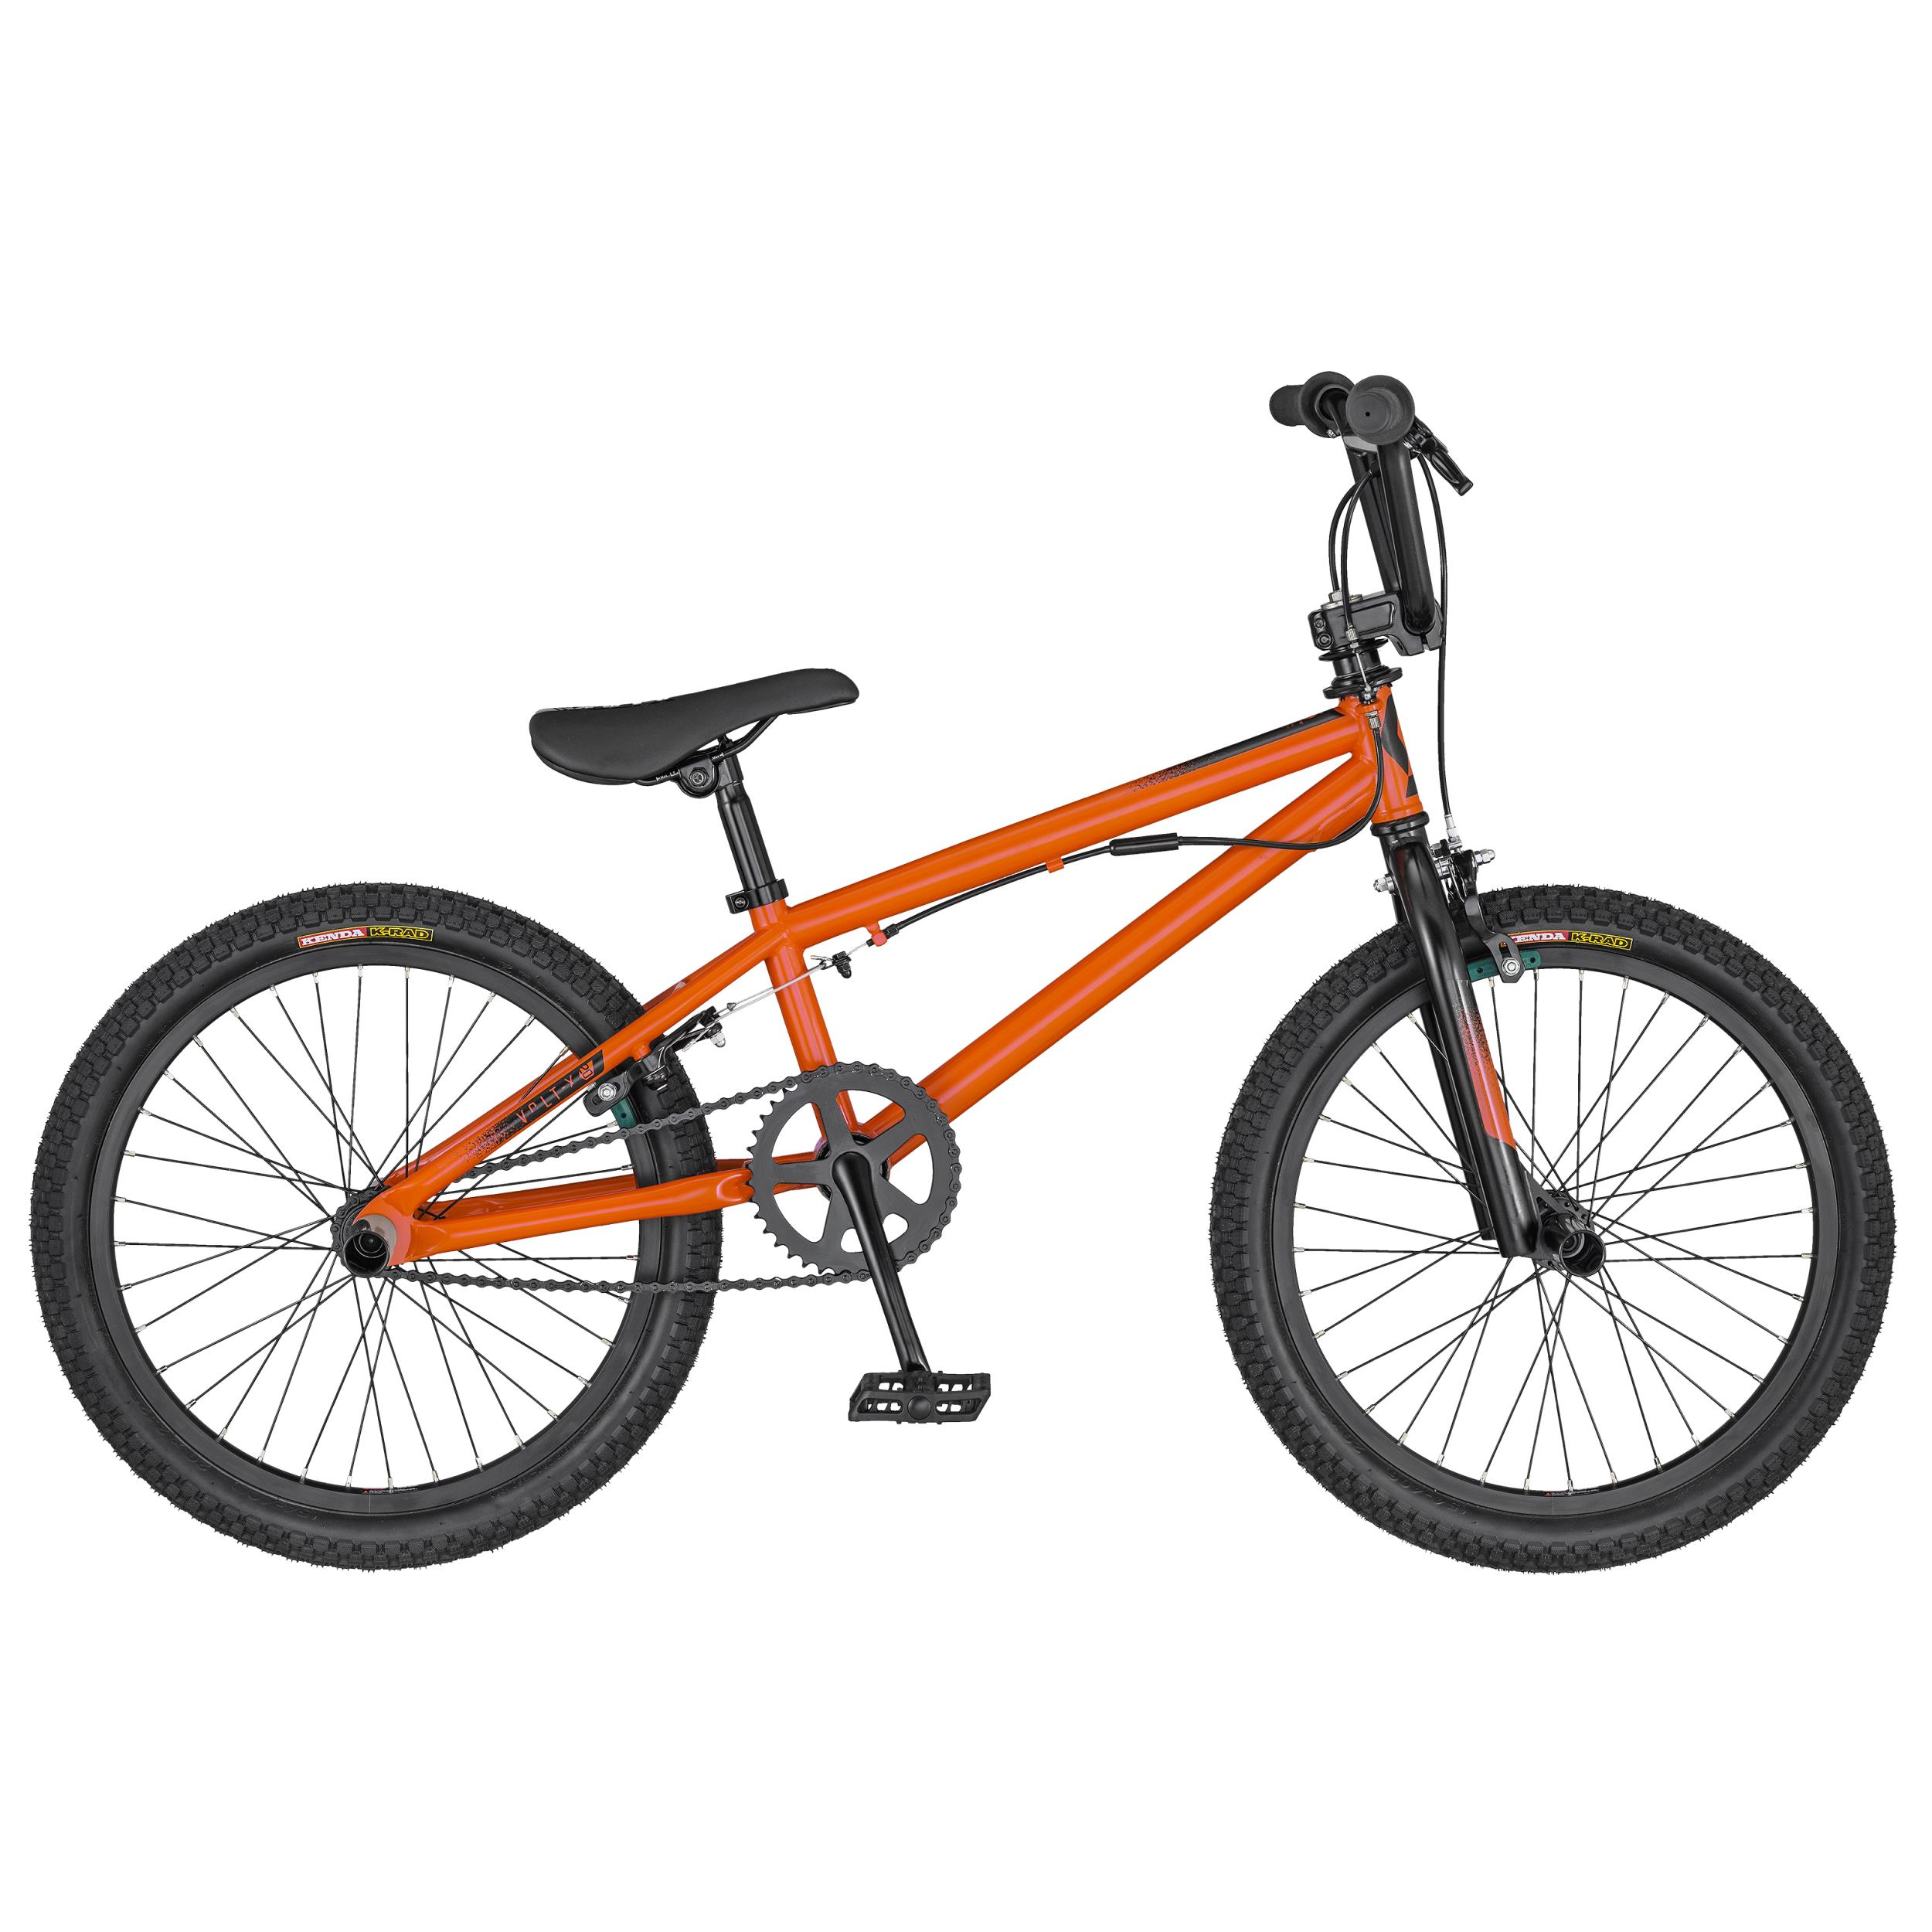 Scott Volt-X 20 cobalt blue / orange 2020 - 20 -